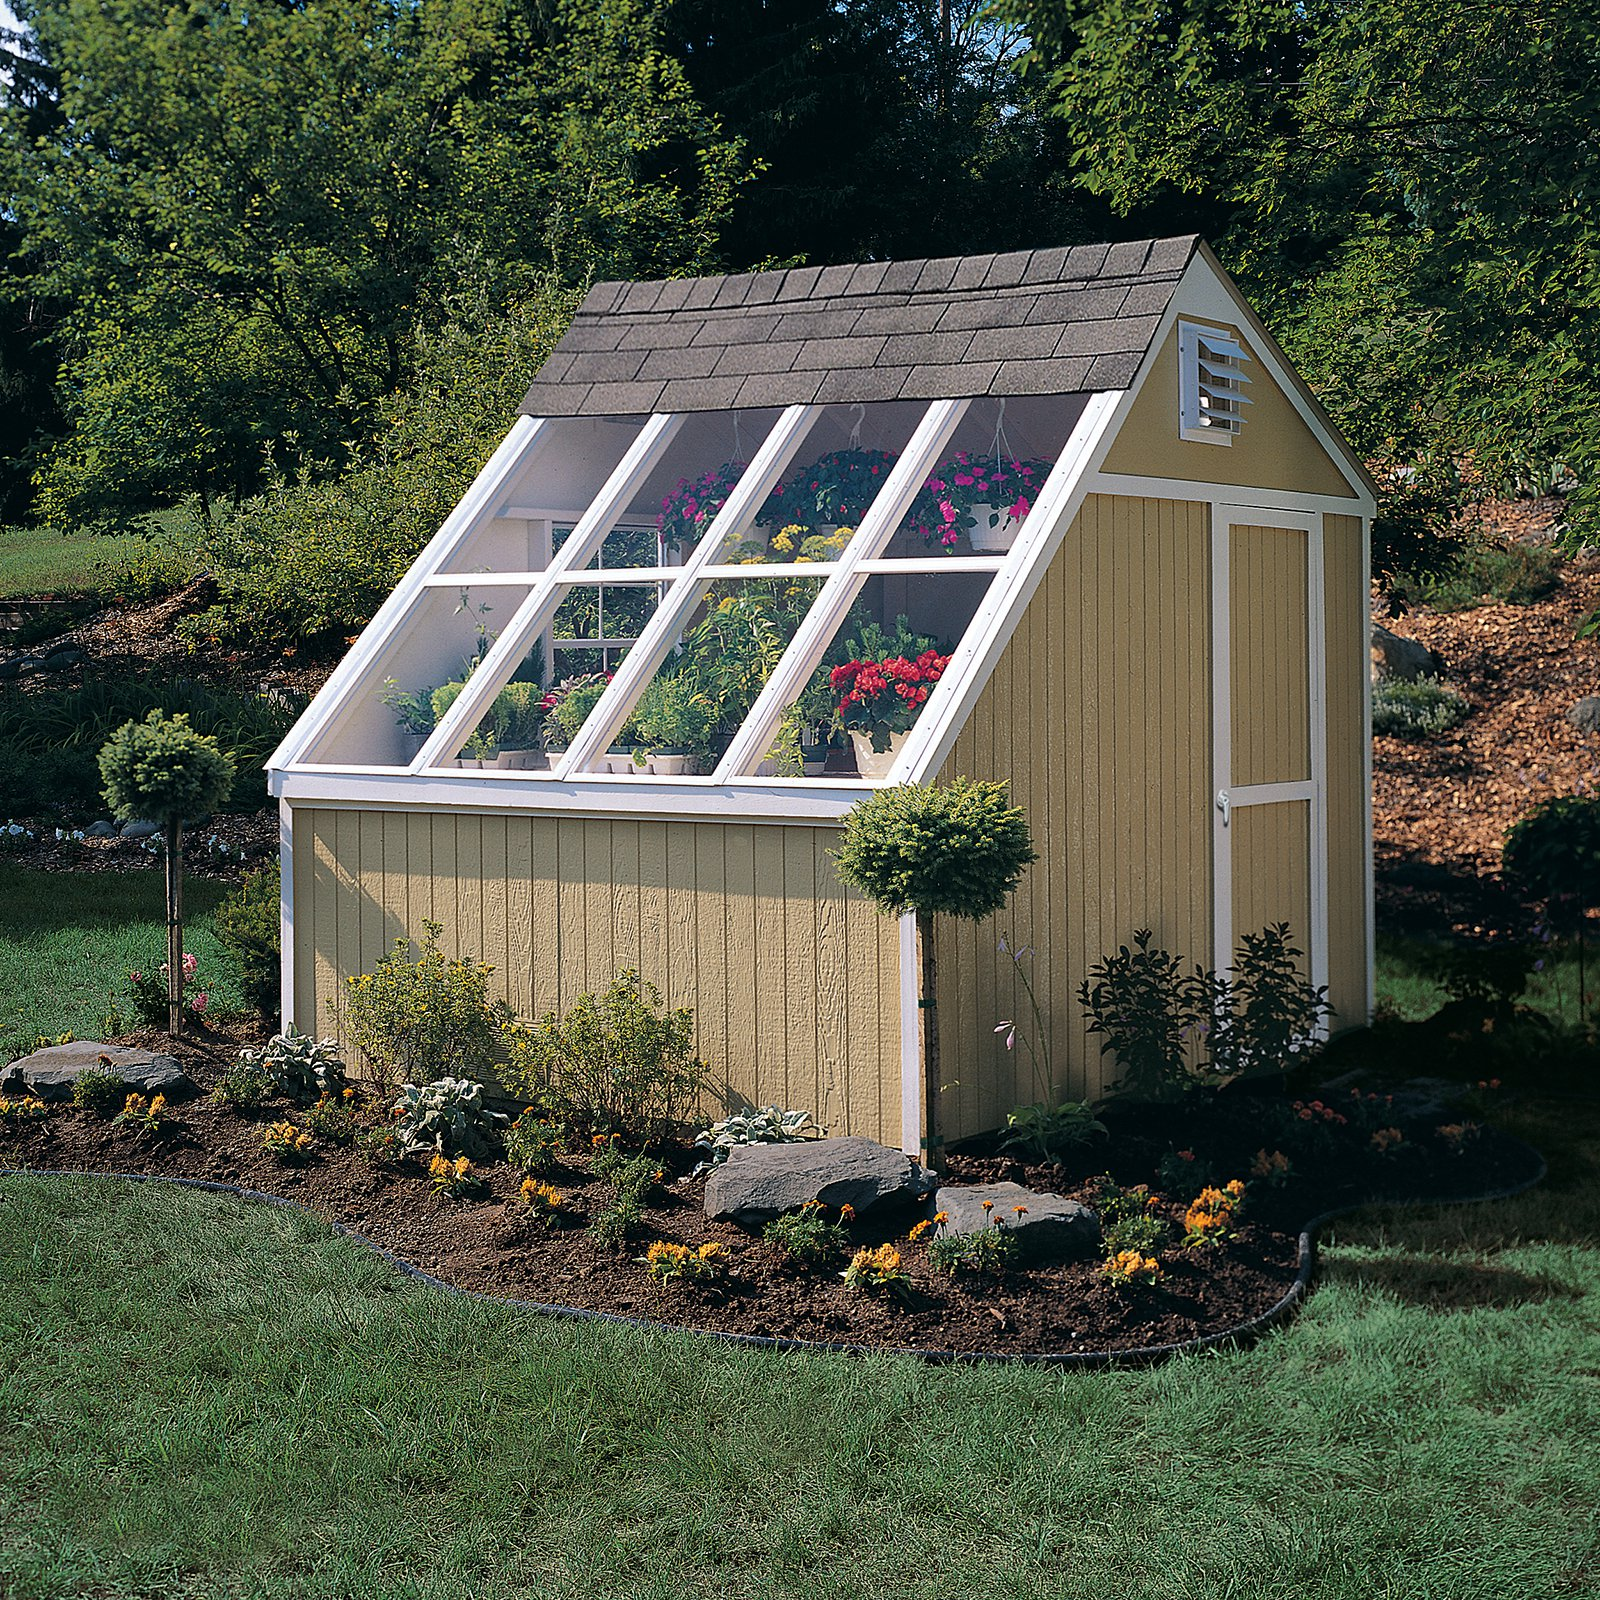 Handy Home Phoenix Solar Shed - 10 x 8 ft.